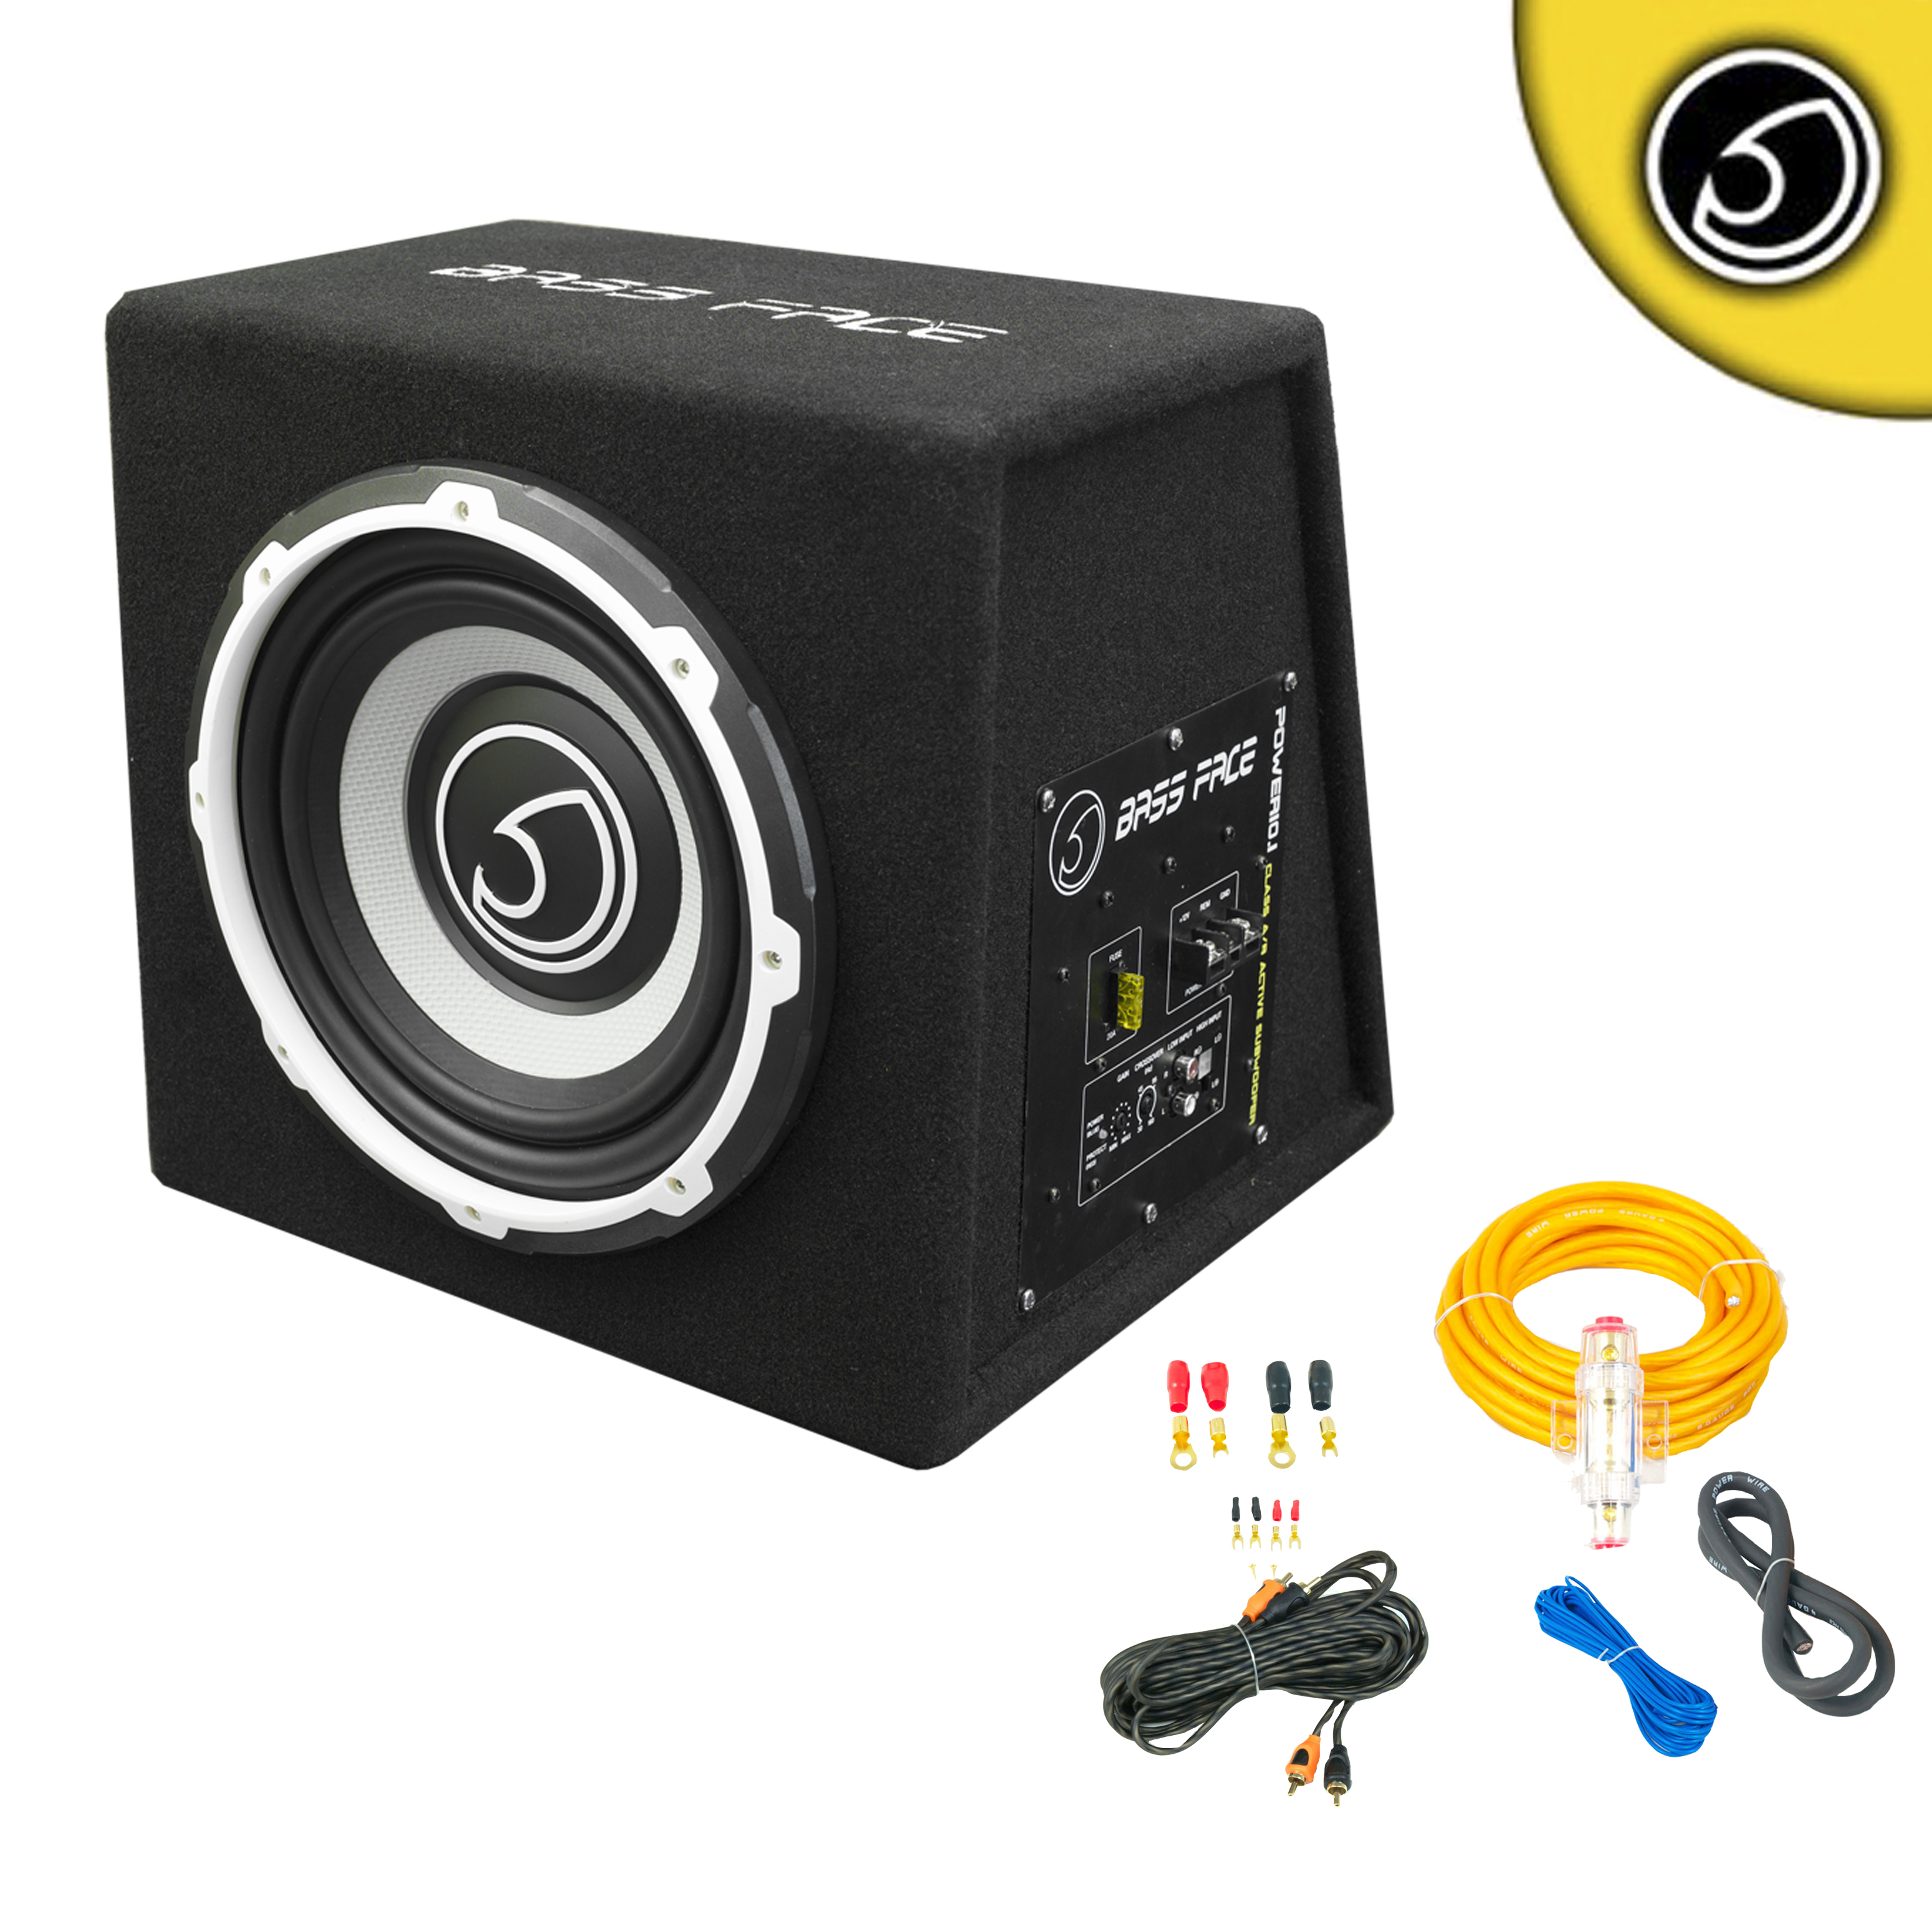 Bassface Power101 1000w 10 Inch Active Sub Amplifier Bass Box With 8 Gauge Power Wiring Twisted Prca Phono Cable Subwoofer